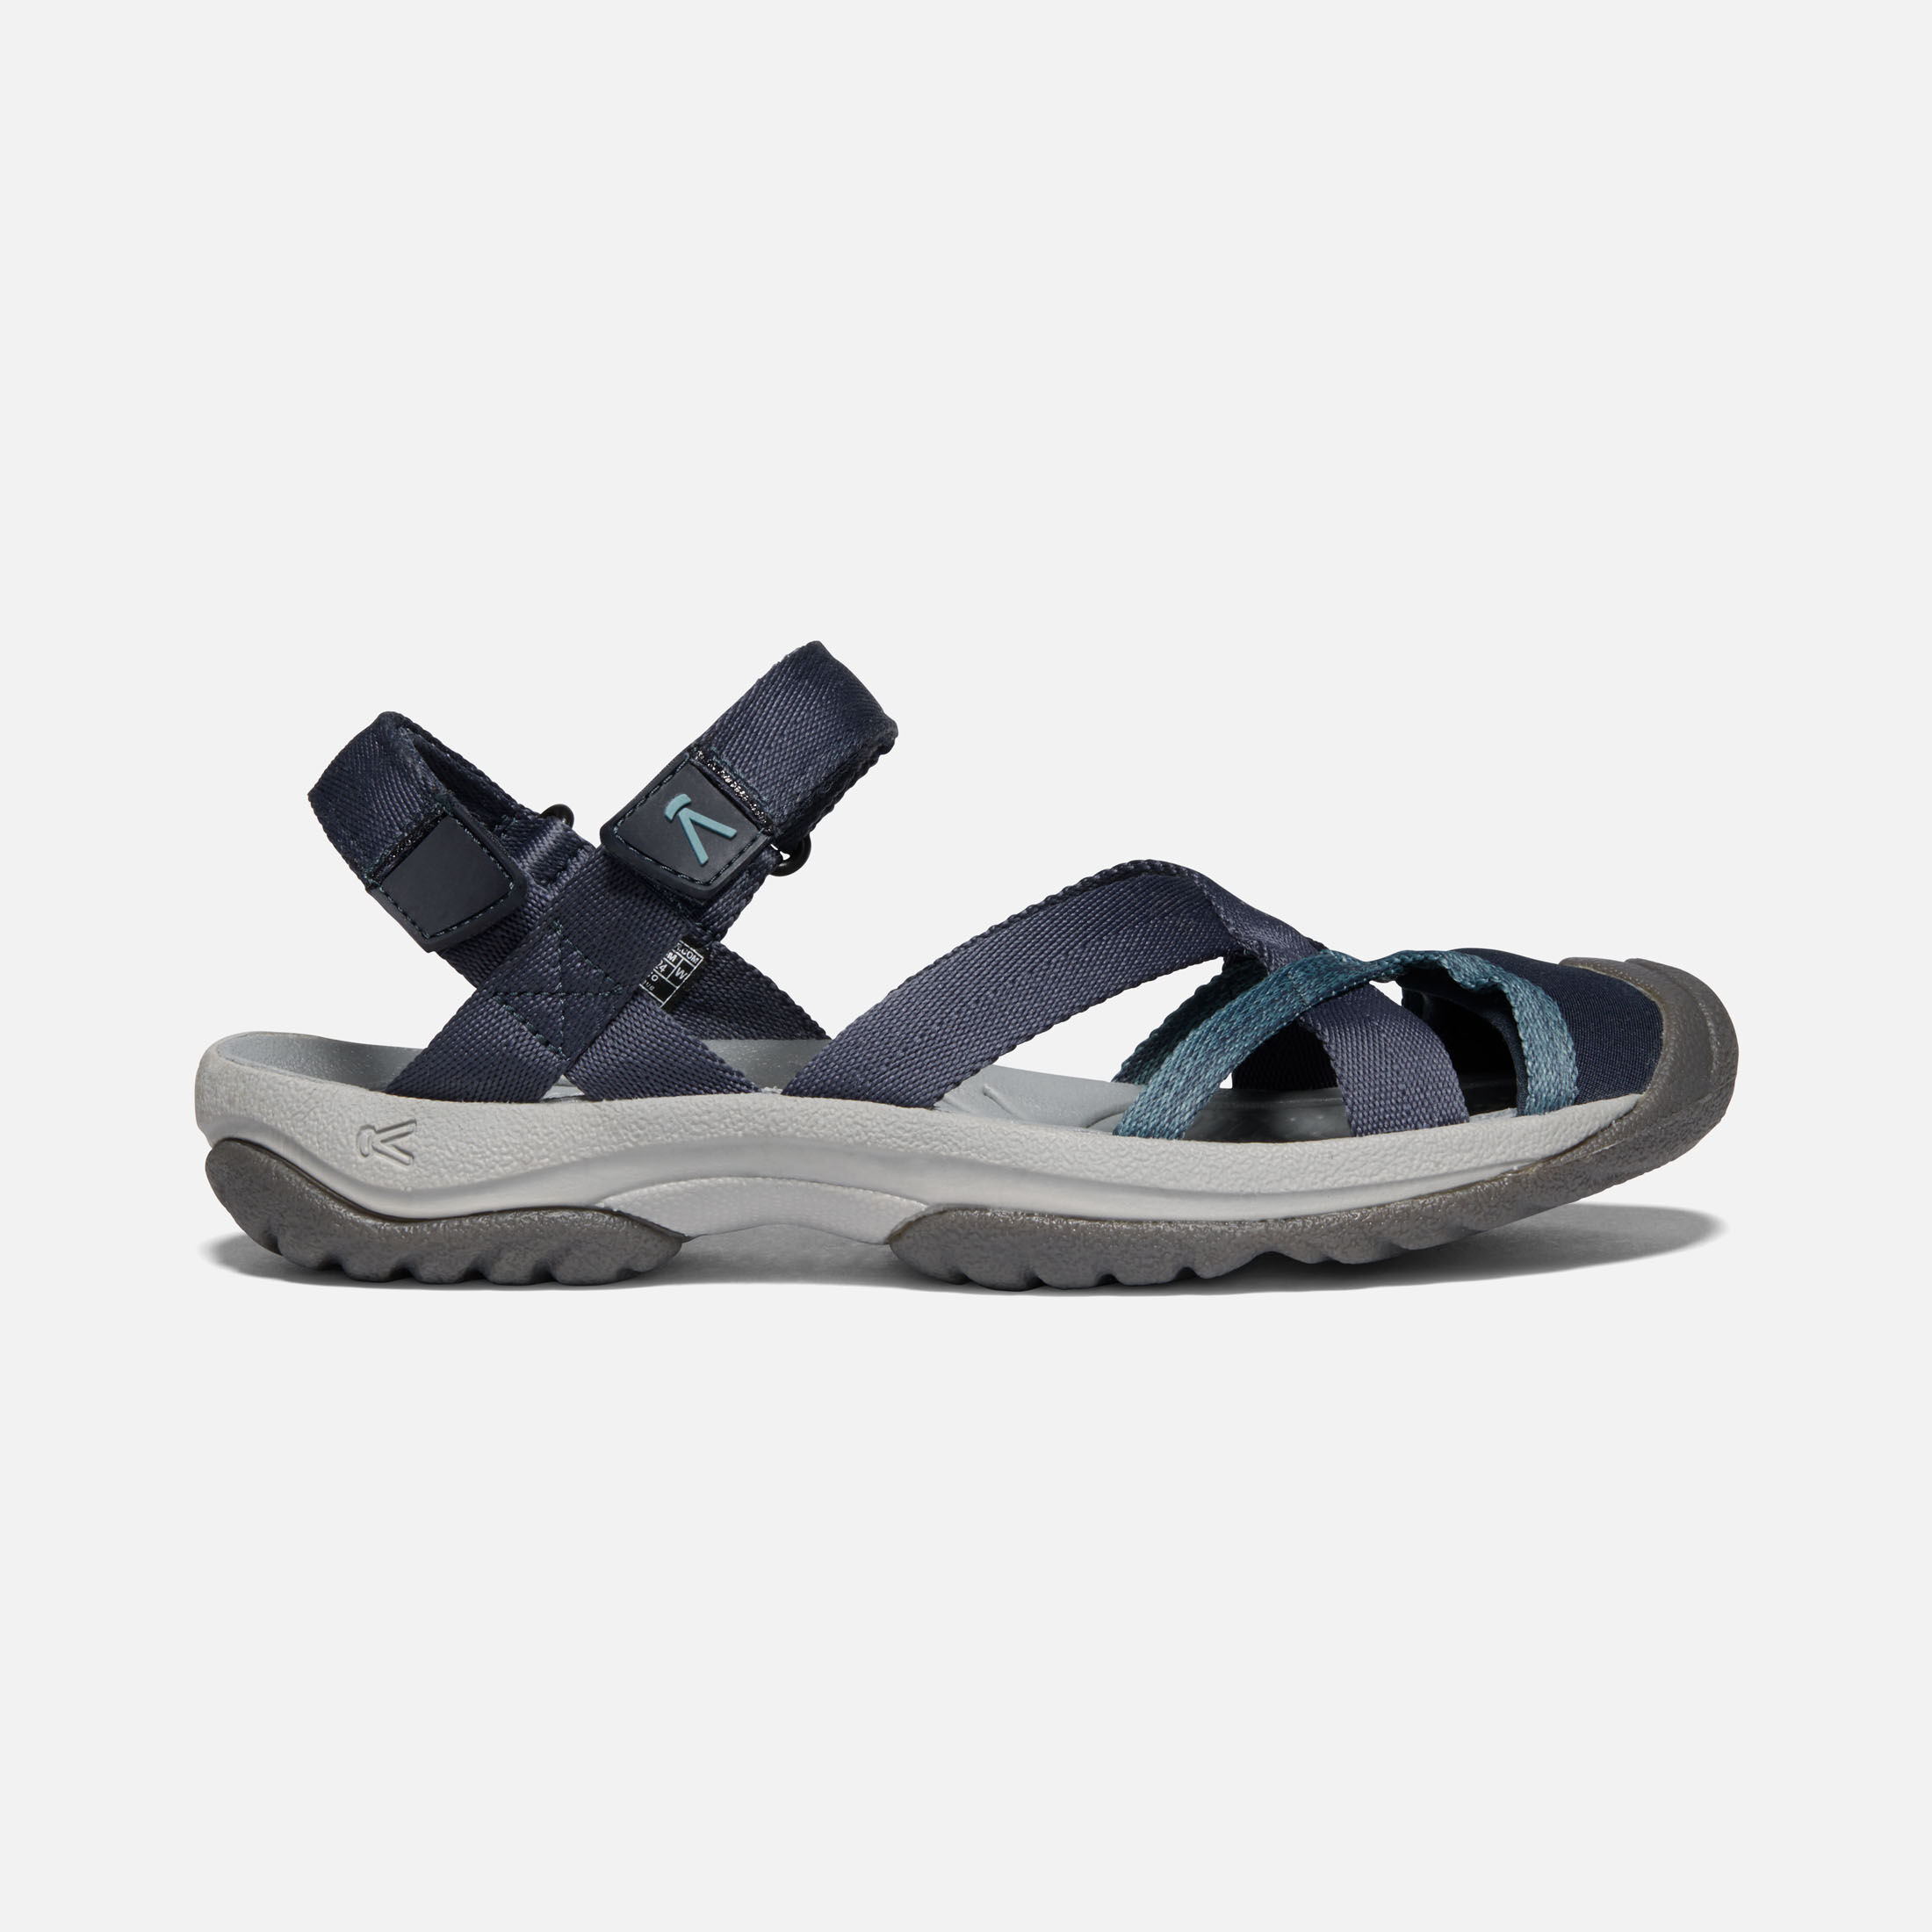 Closed-Toe Sandals - Ankle Strap - Kira